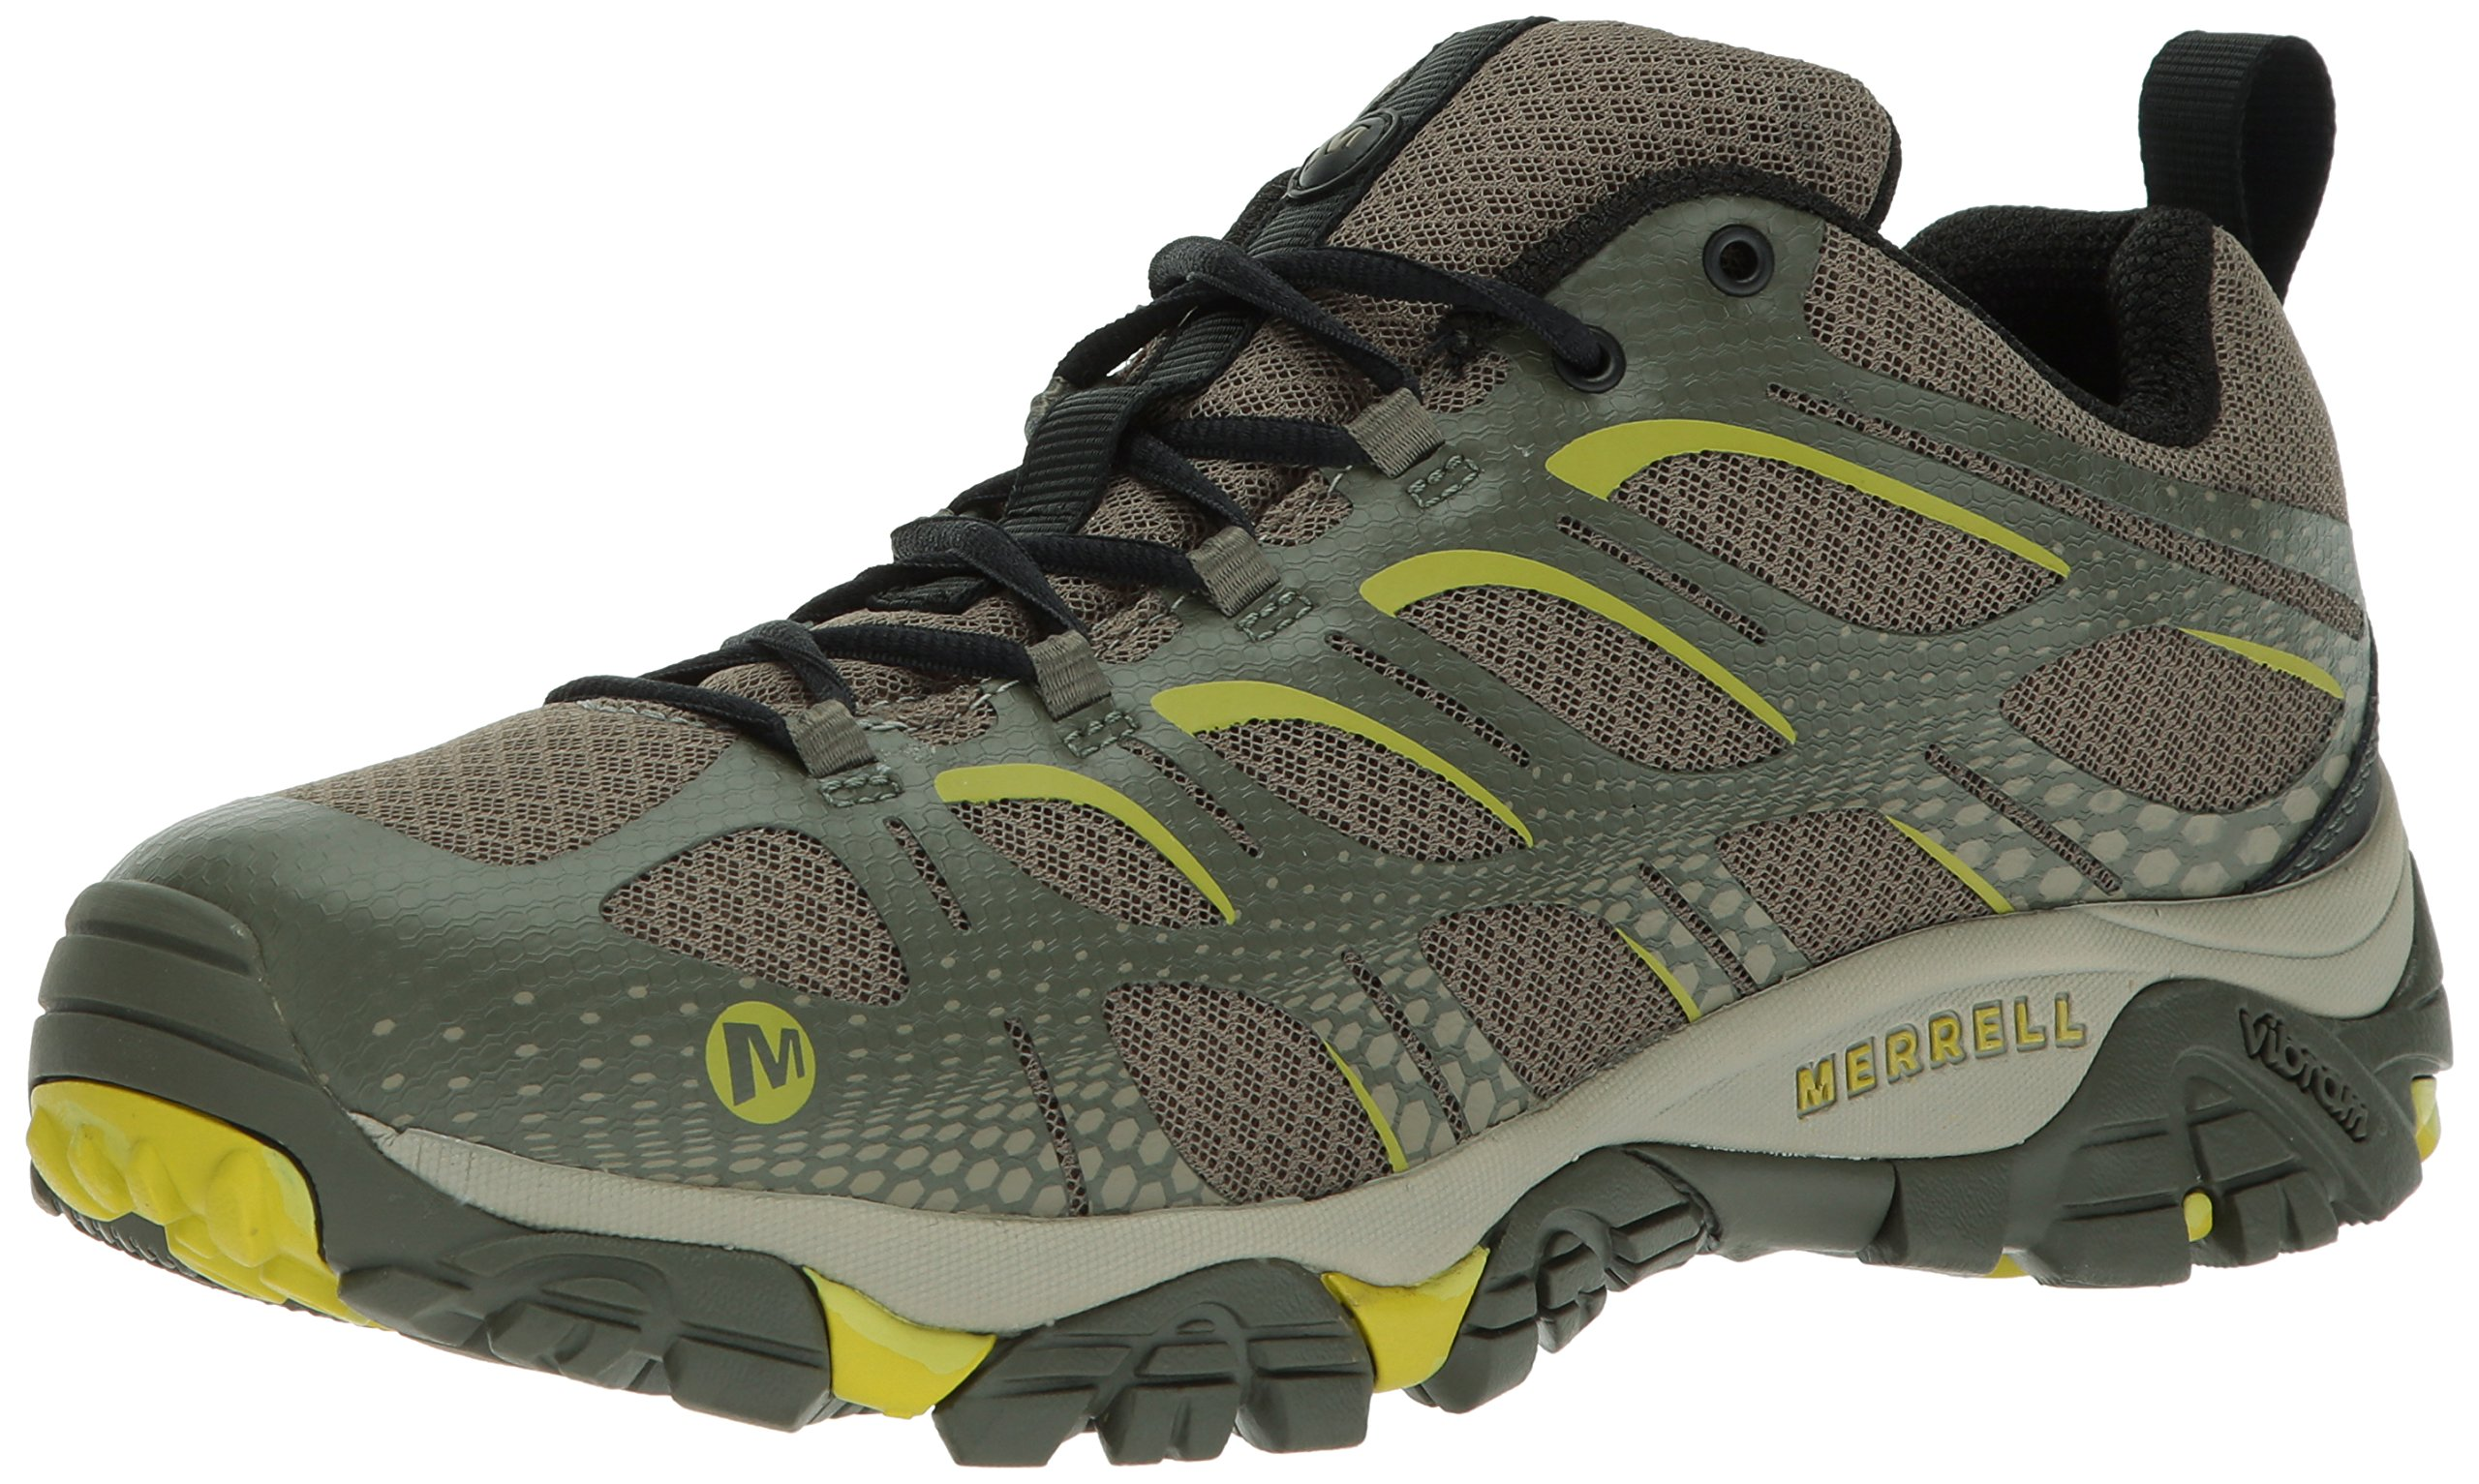 Merrell Men's Moab Edge Hiking Shoe, Dusty Olive, 10.5 M US by Merrell